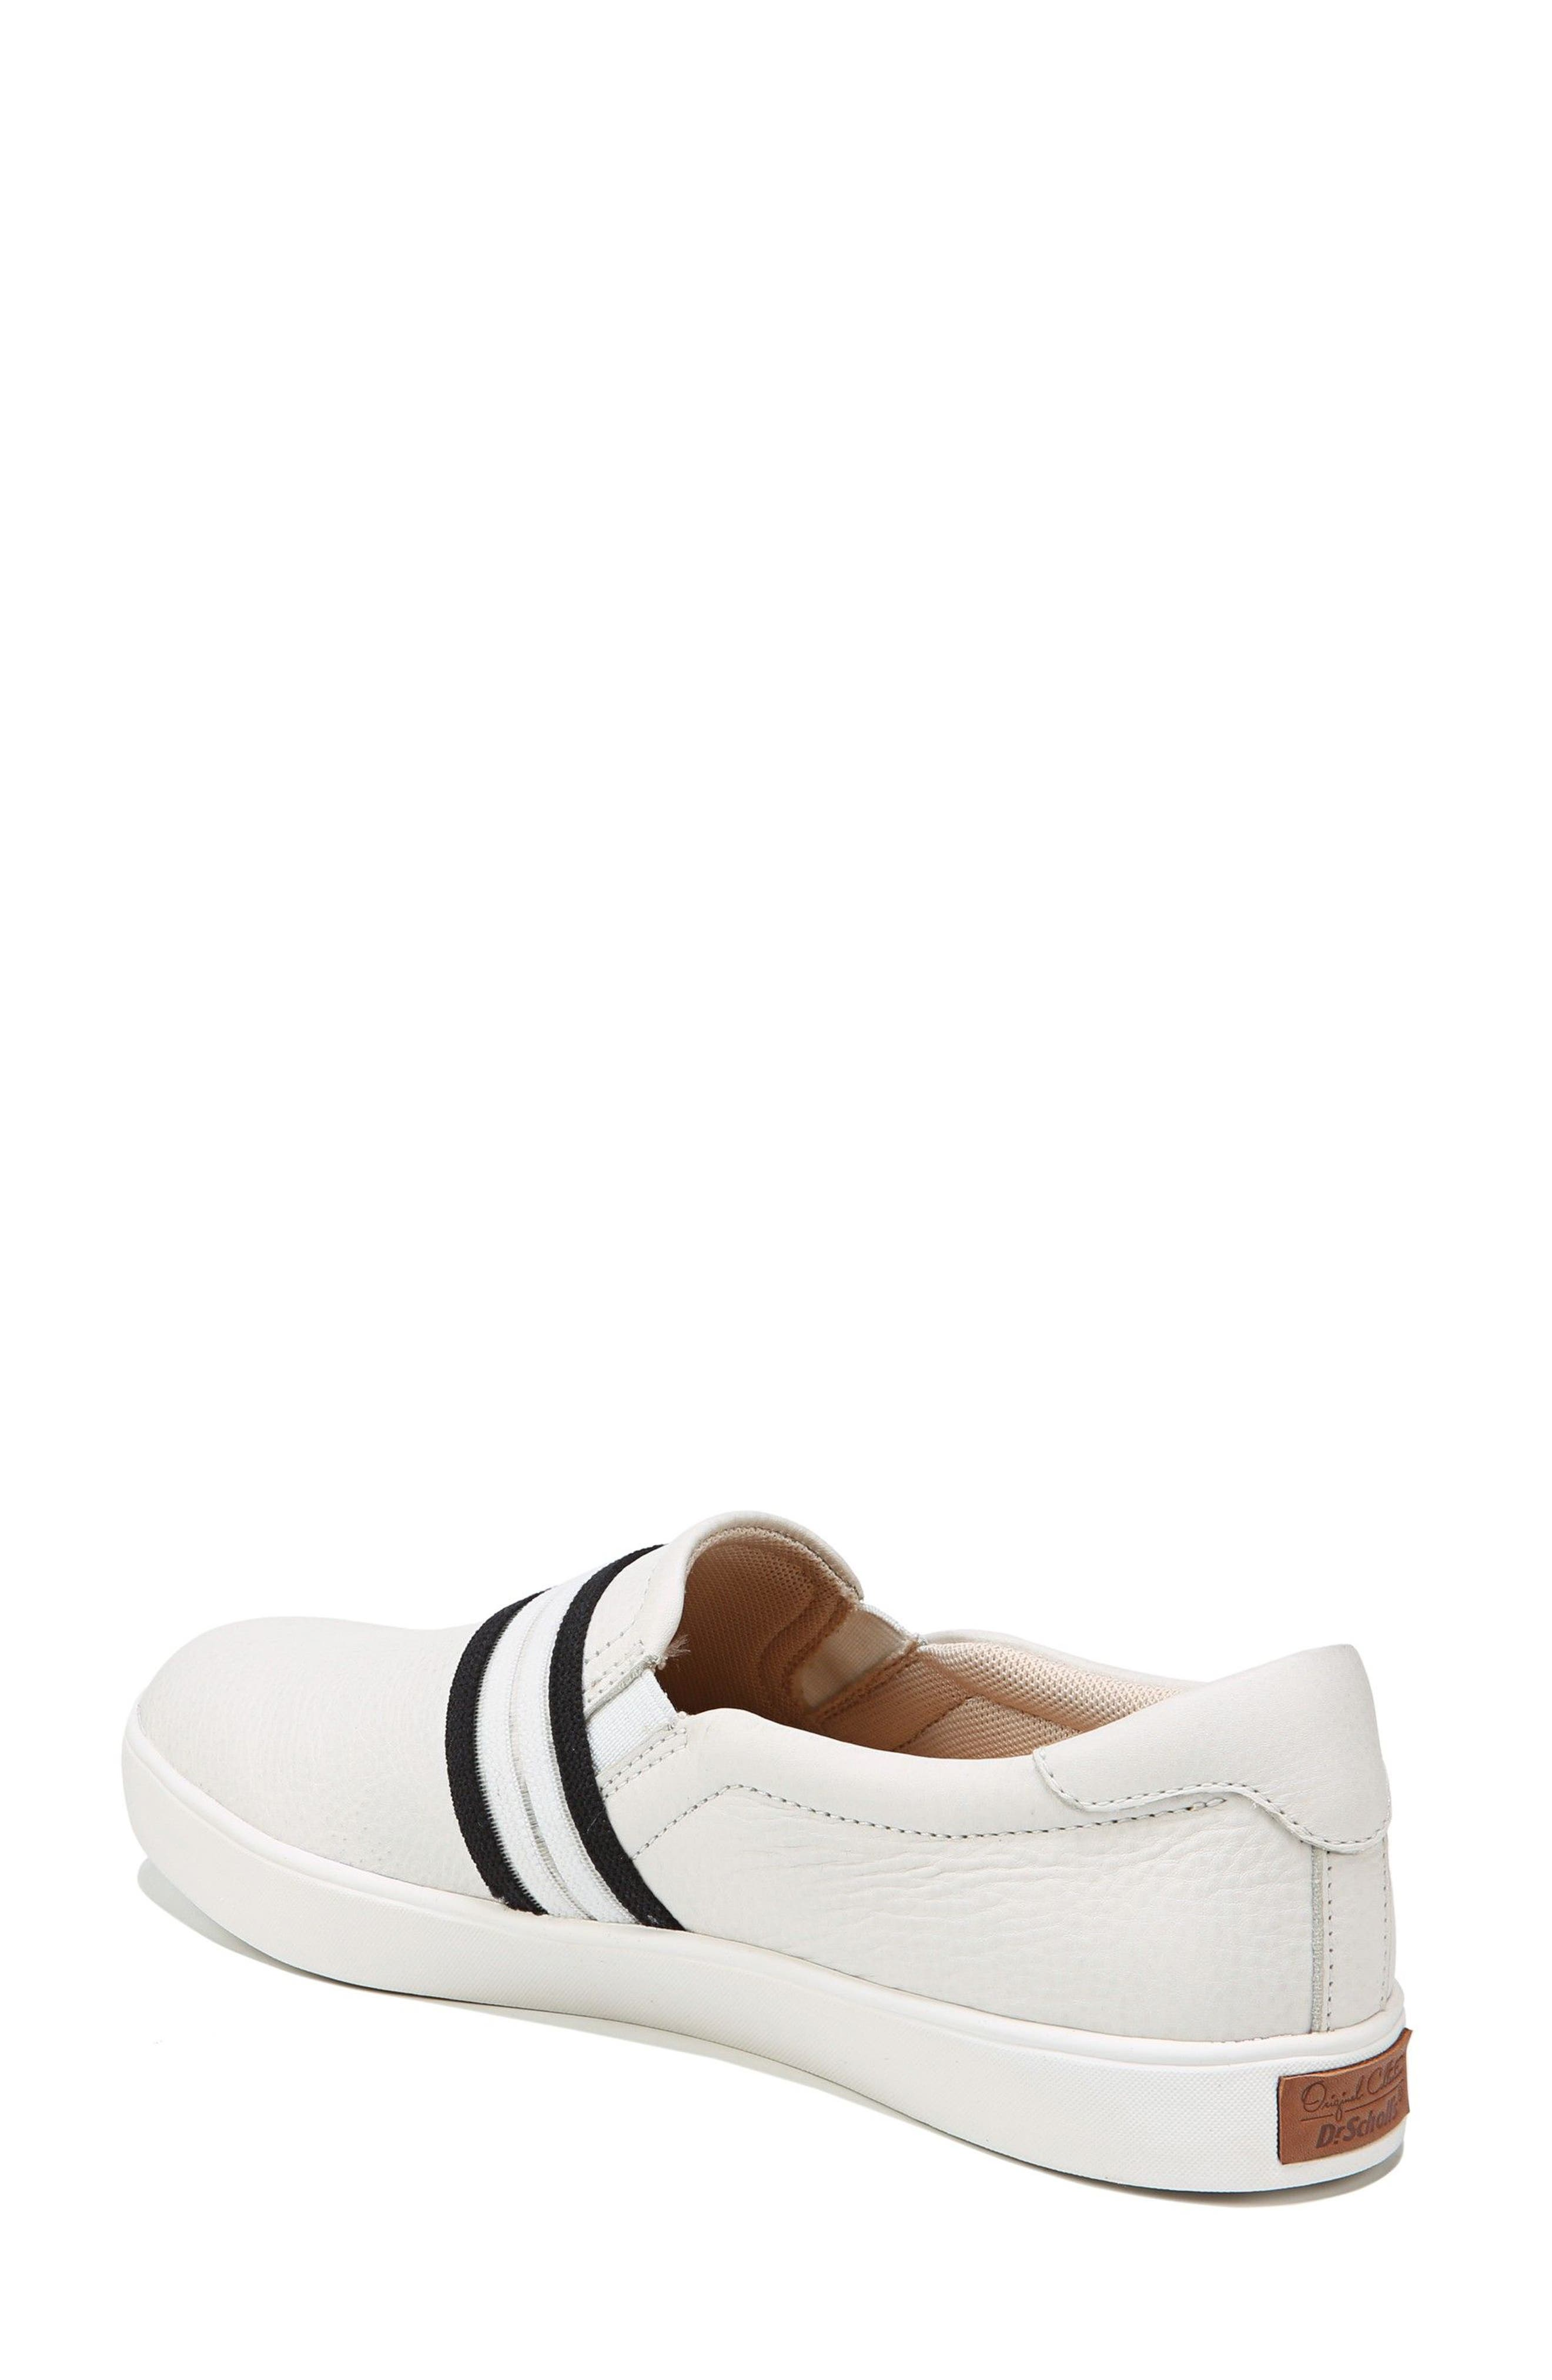 Scout Slip-On Sneaker,                             Alternate thumbnail 2, color,                             White Leather